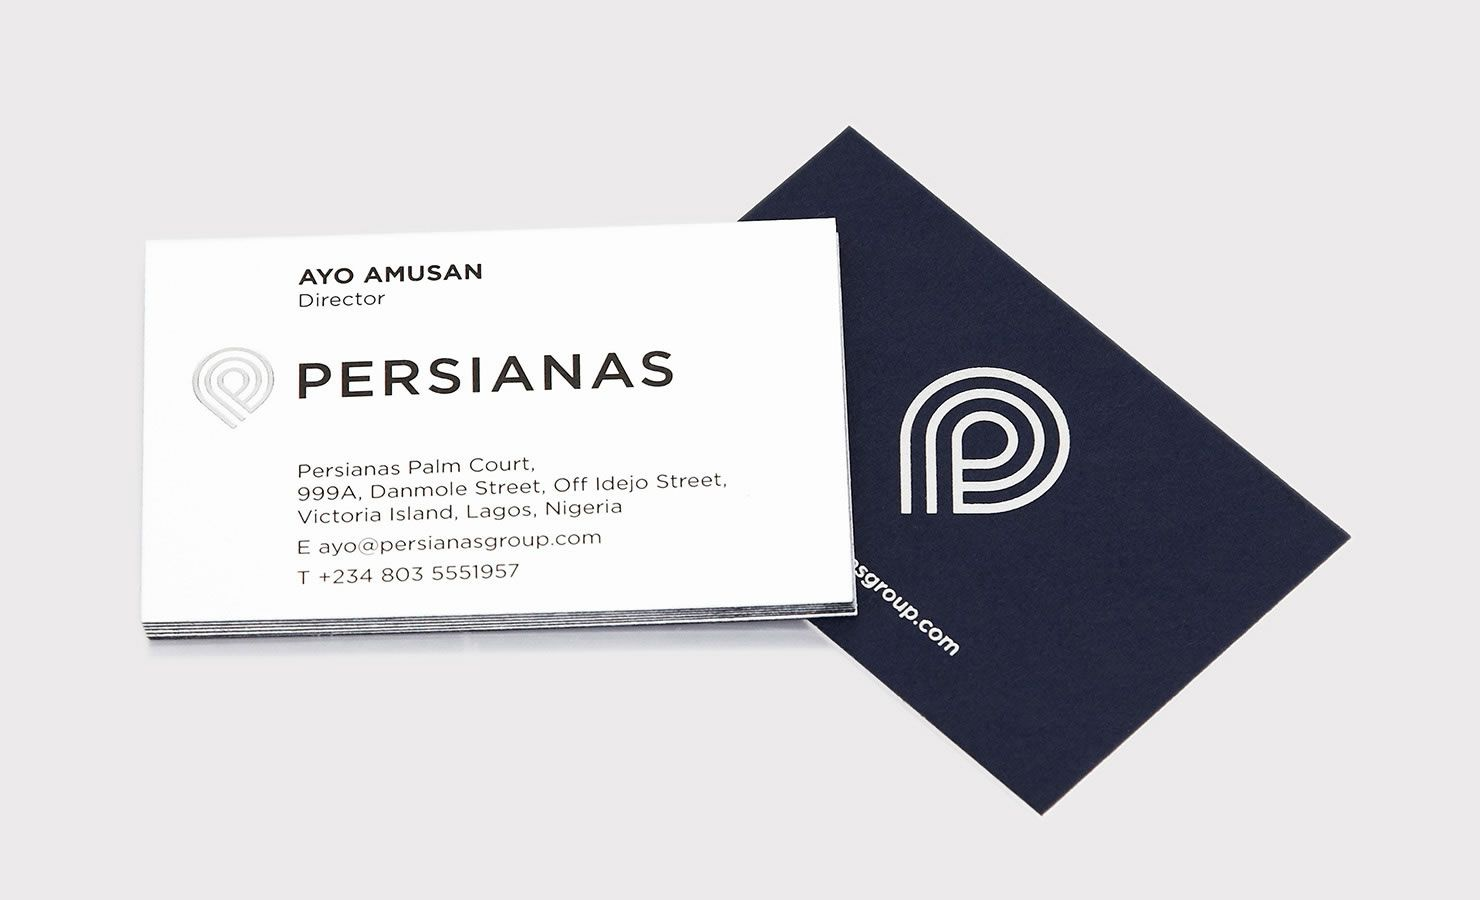 P.A.R Trelsa | Business Collateral | Stationery | Pinterest ...